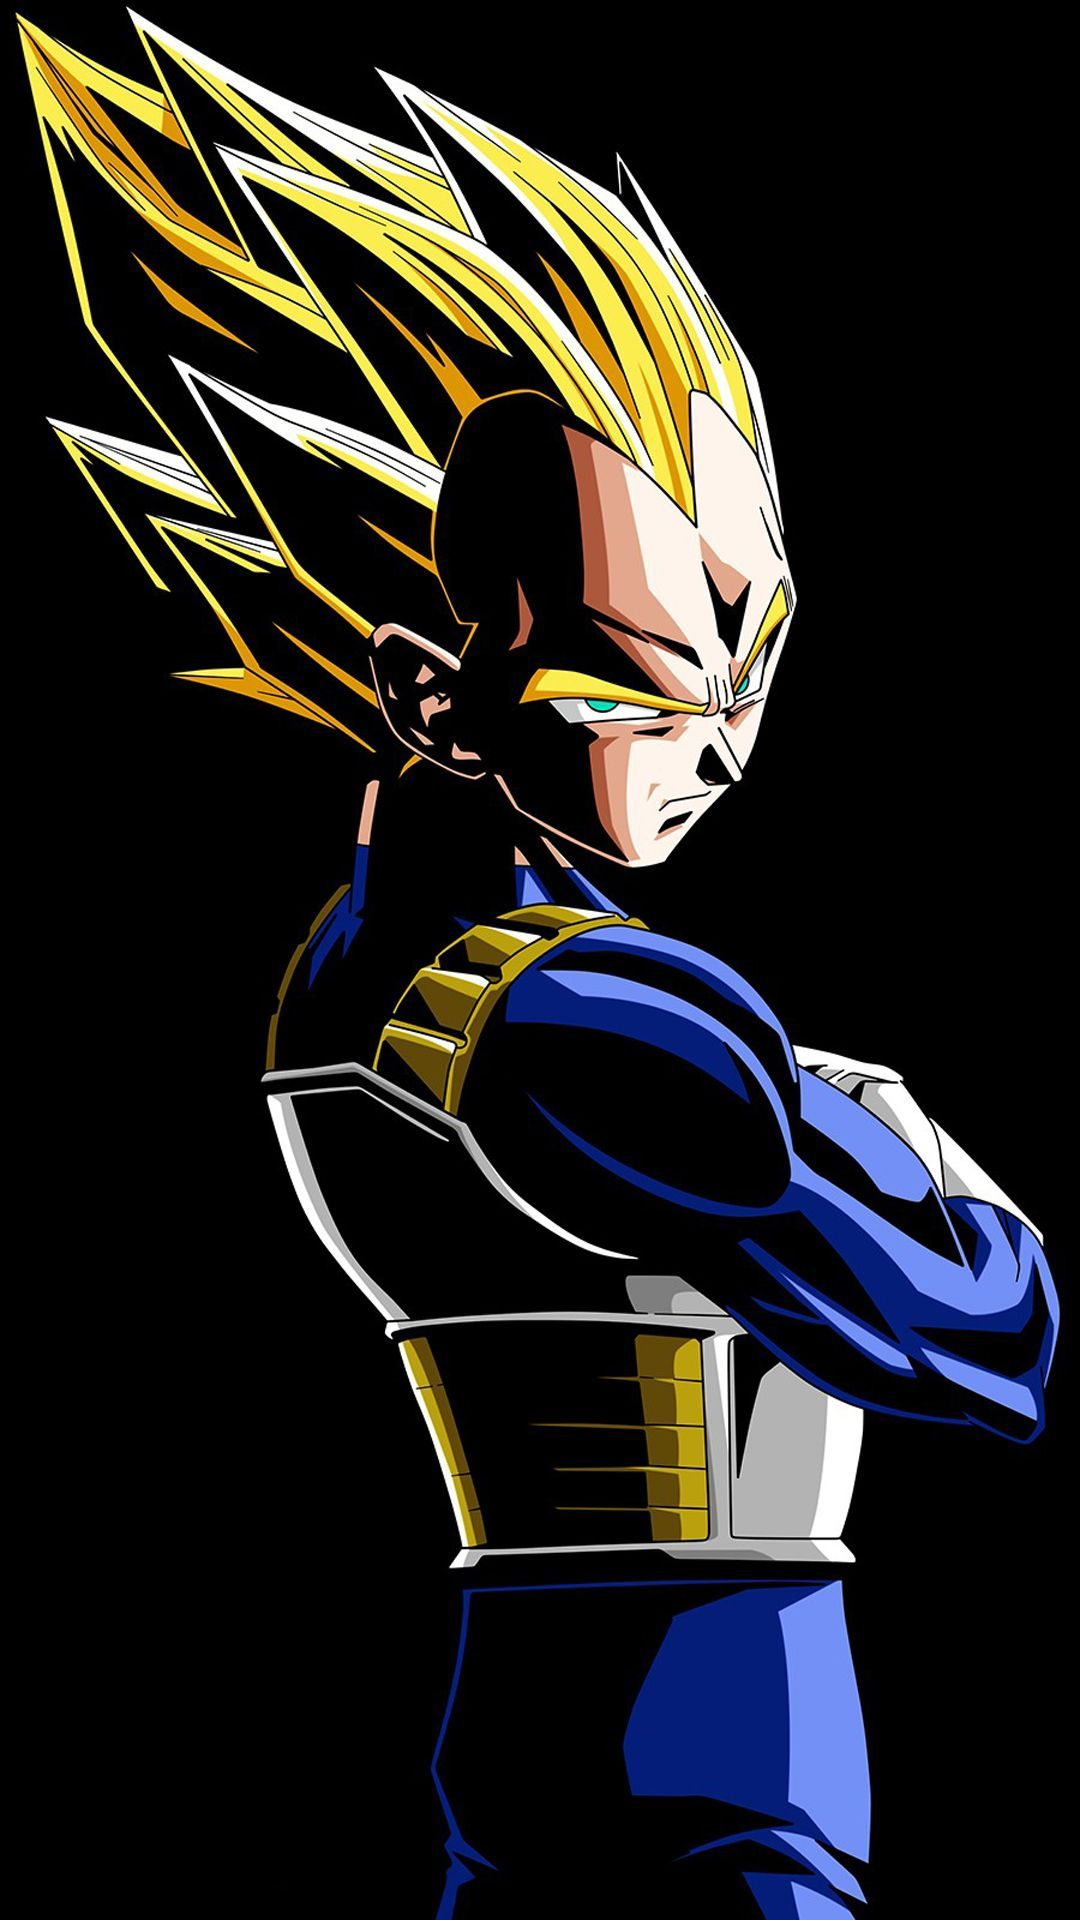 Dbz phone wallpapers wallpapersafari - Vegeta wallpapers for mobile ...